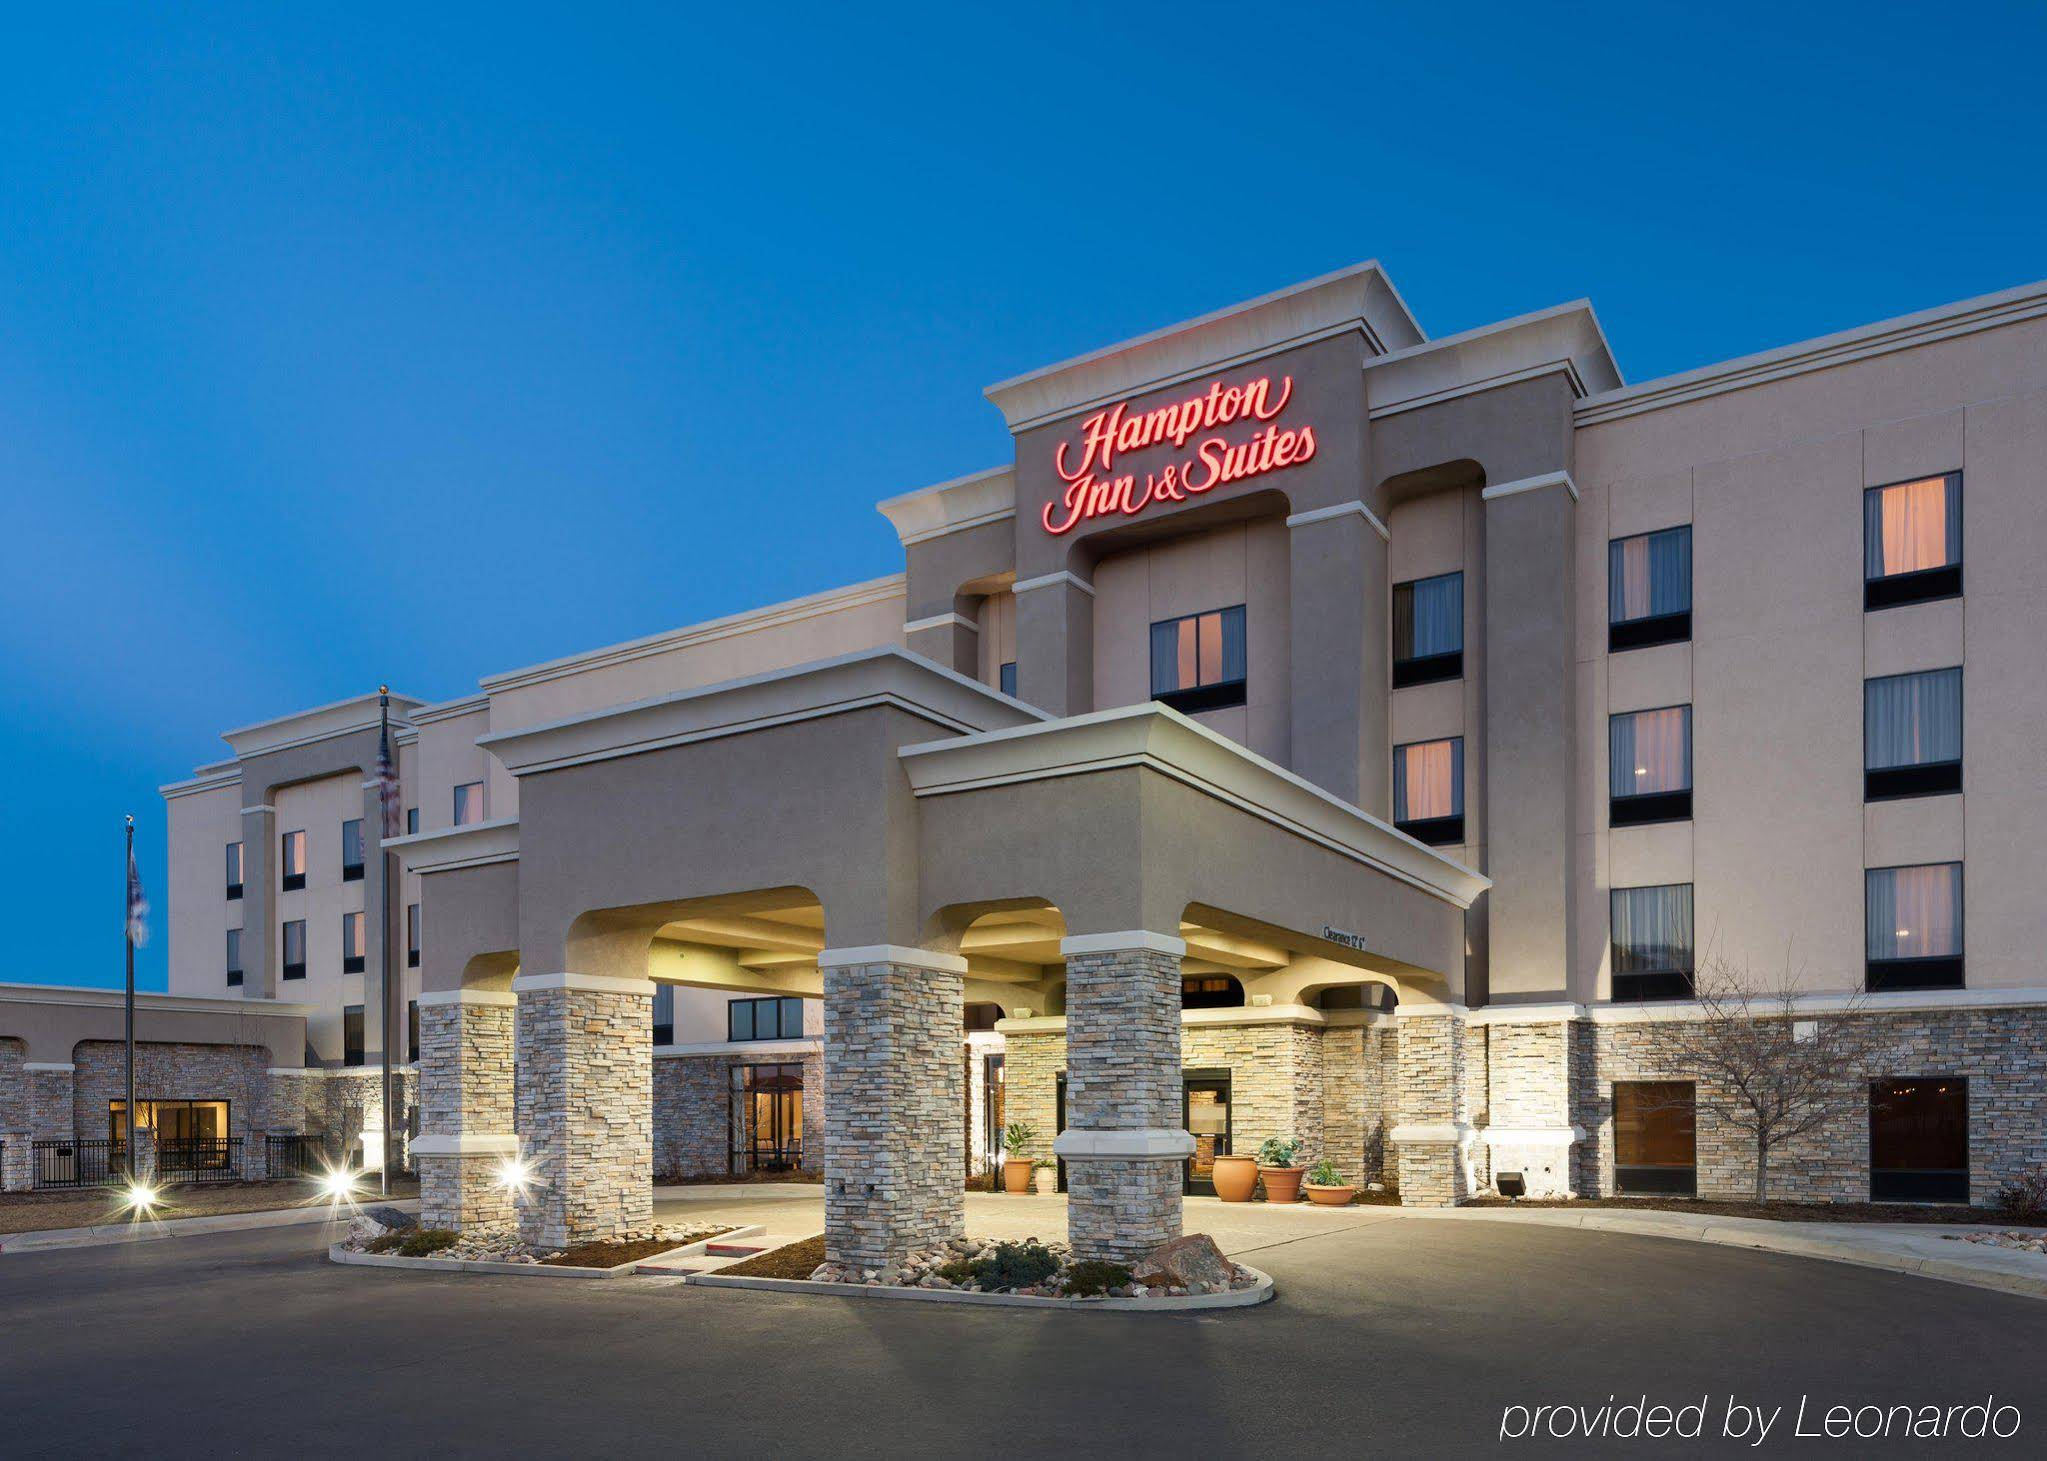 Hampton Inn & Suites Colorado Springs I 25 South